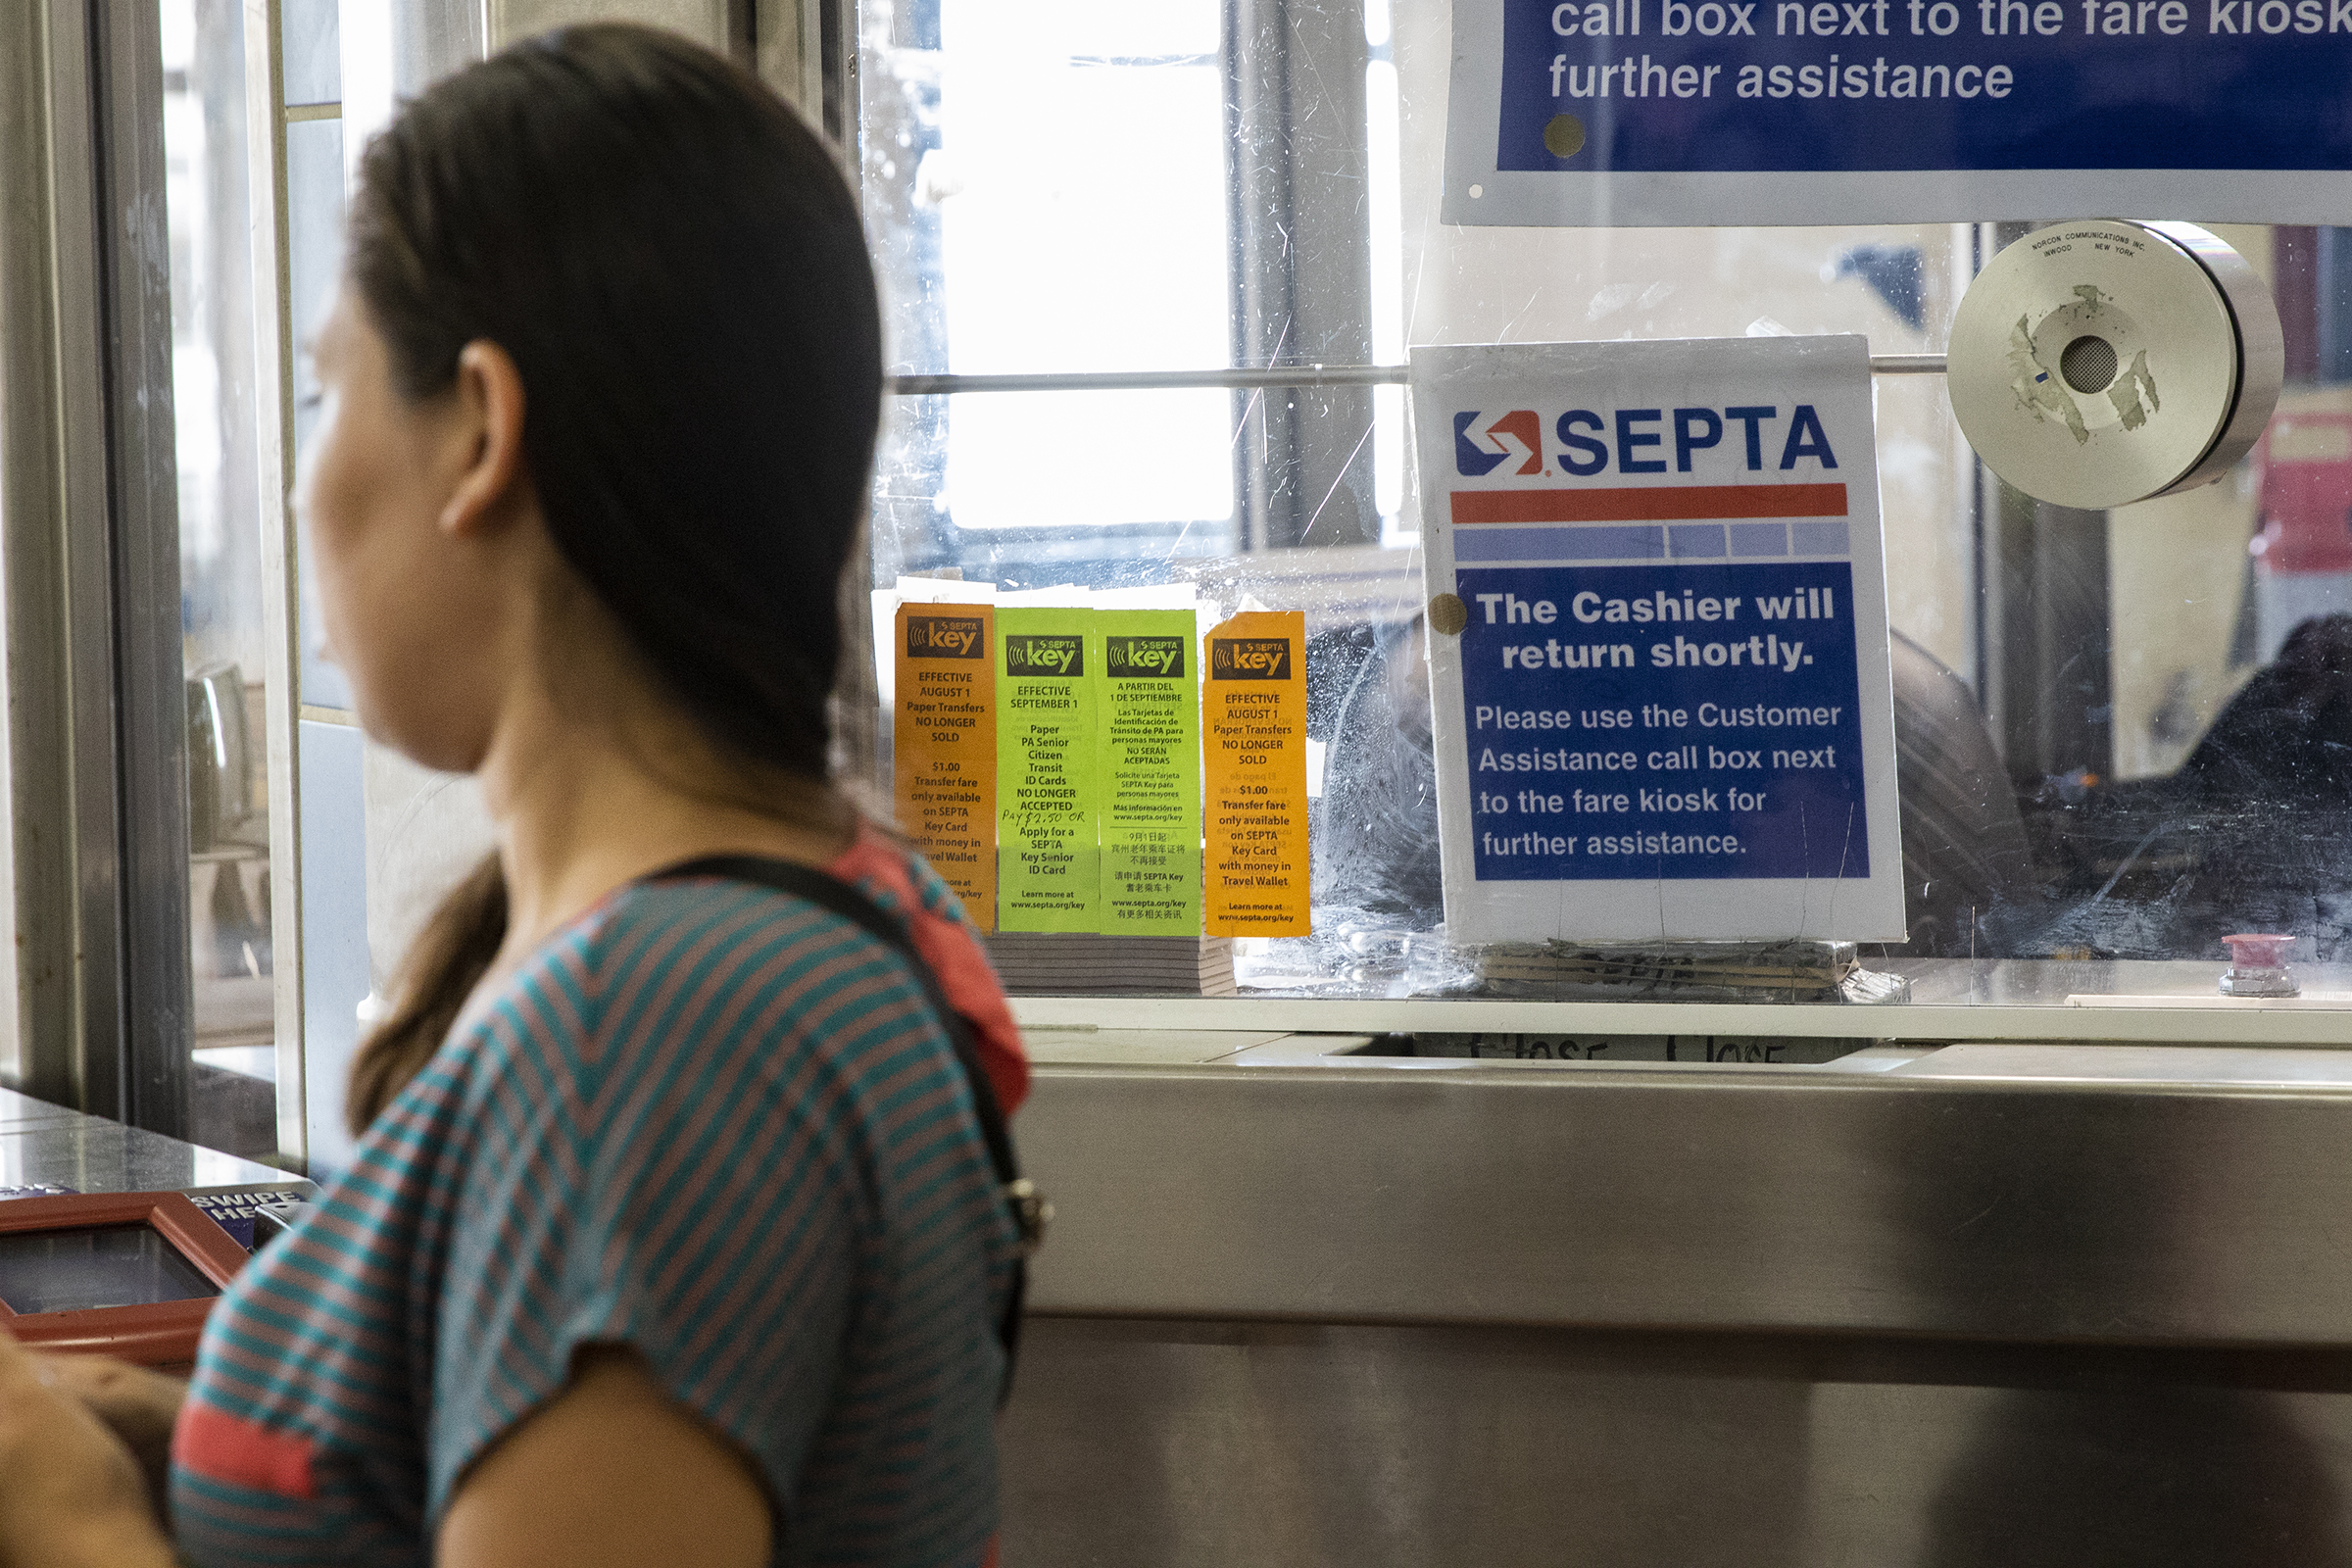 Commuters wait for a SEPTA cashier to take their paper transfer slips at the 69th Street Transportation Center in Upper Darby, on Thursday, July 26, 2018. SEPTA will no longer be selling paper transfers starting on Aug. 1. HEATHER KHALIFA / Staff Photographer